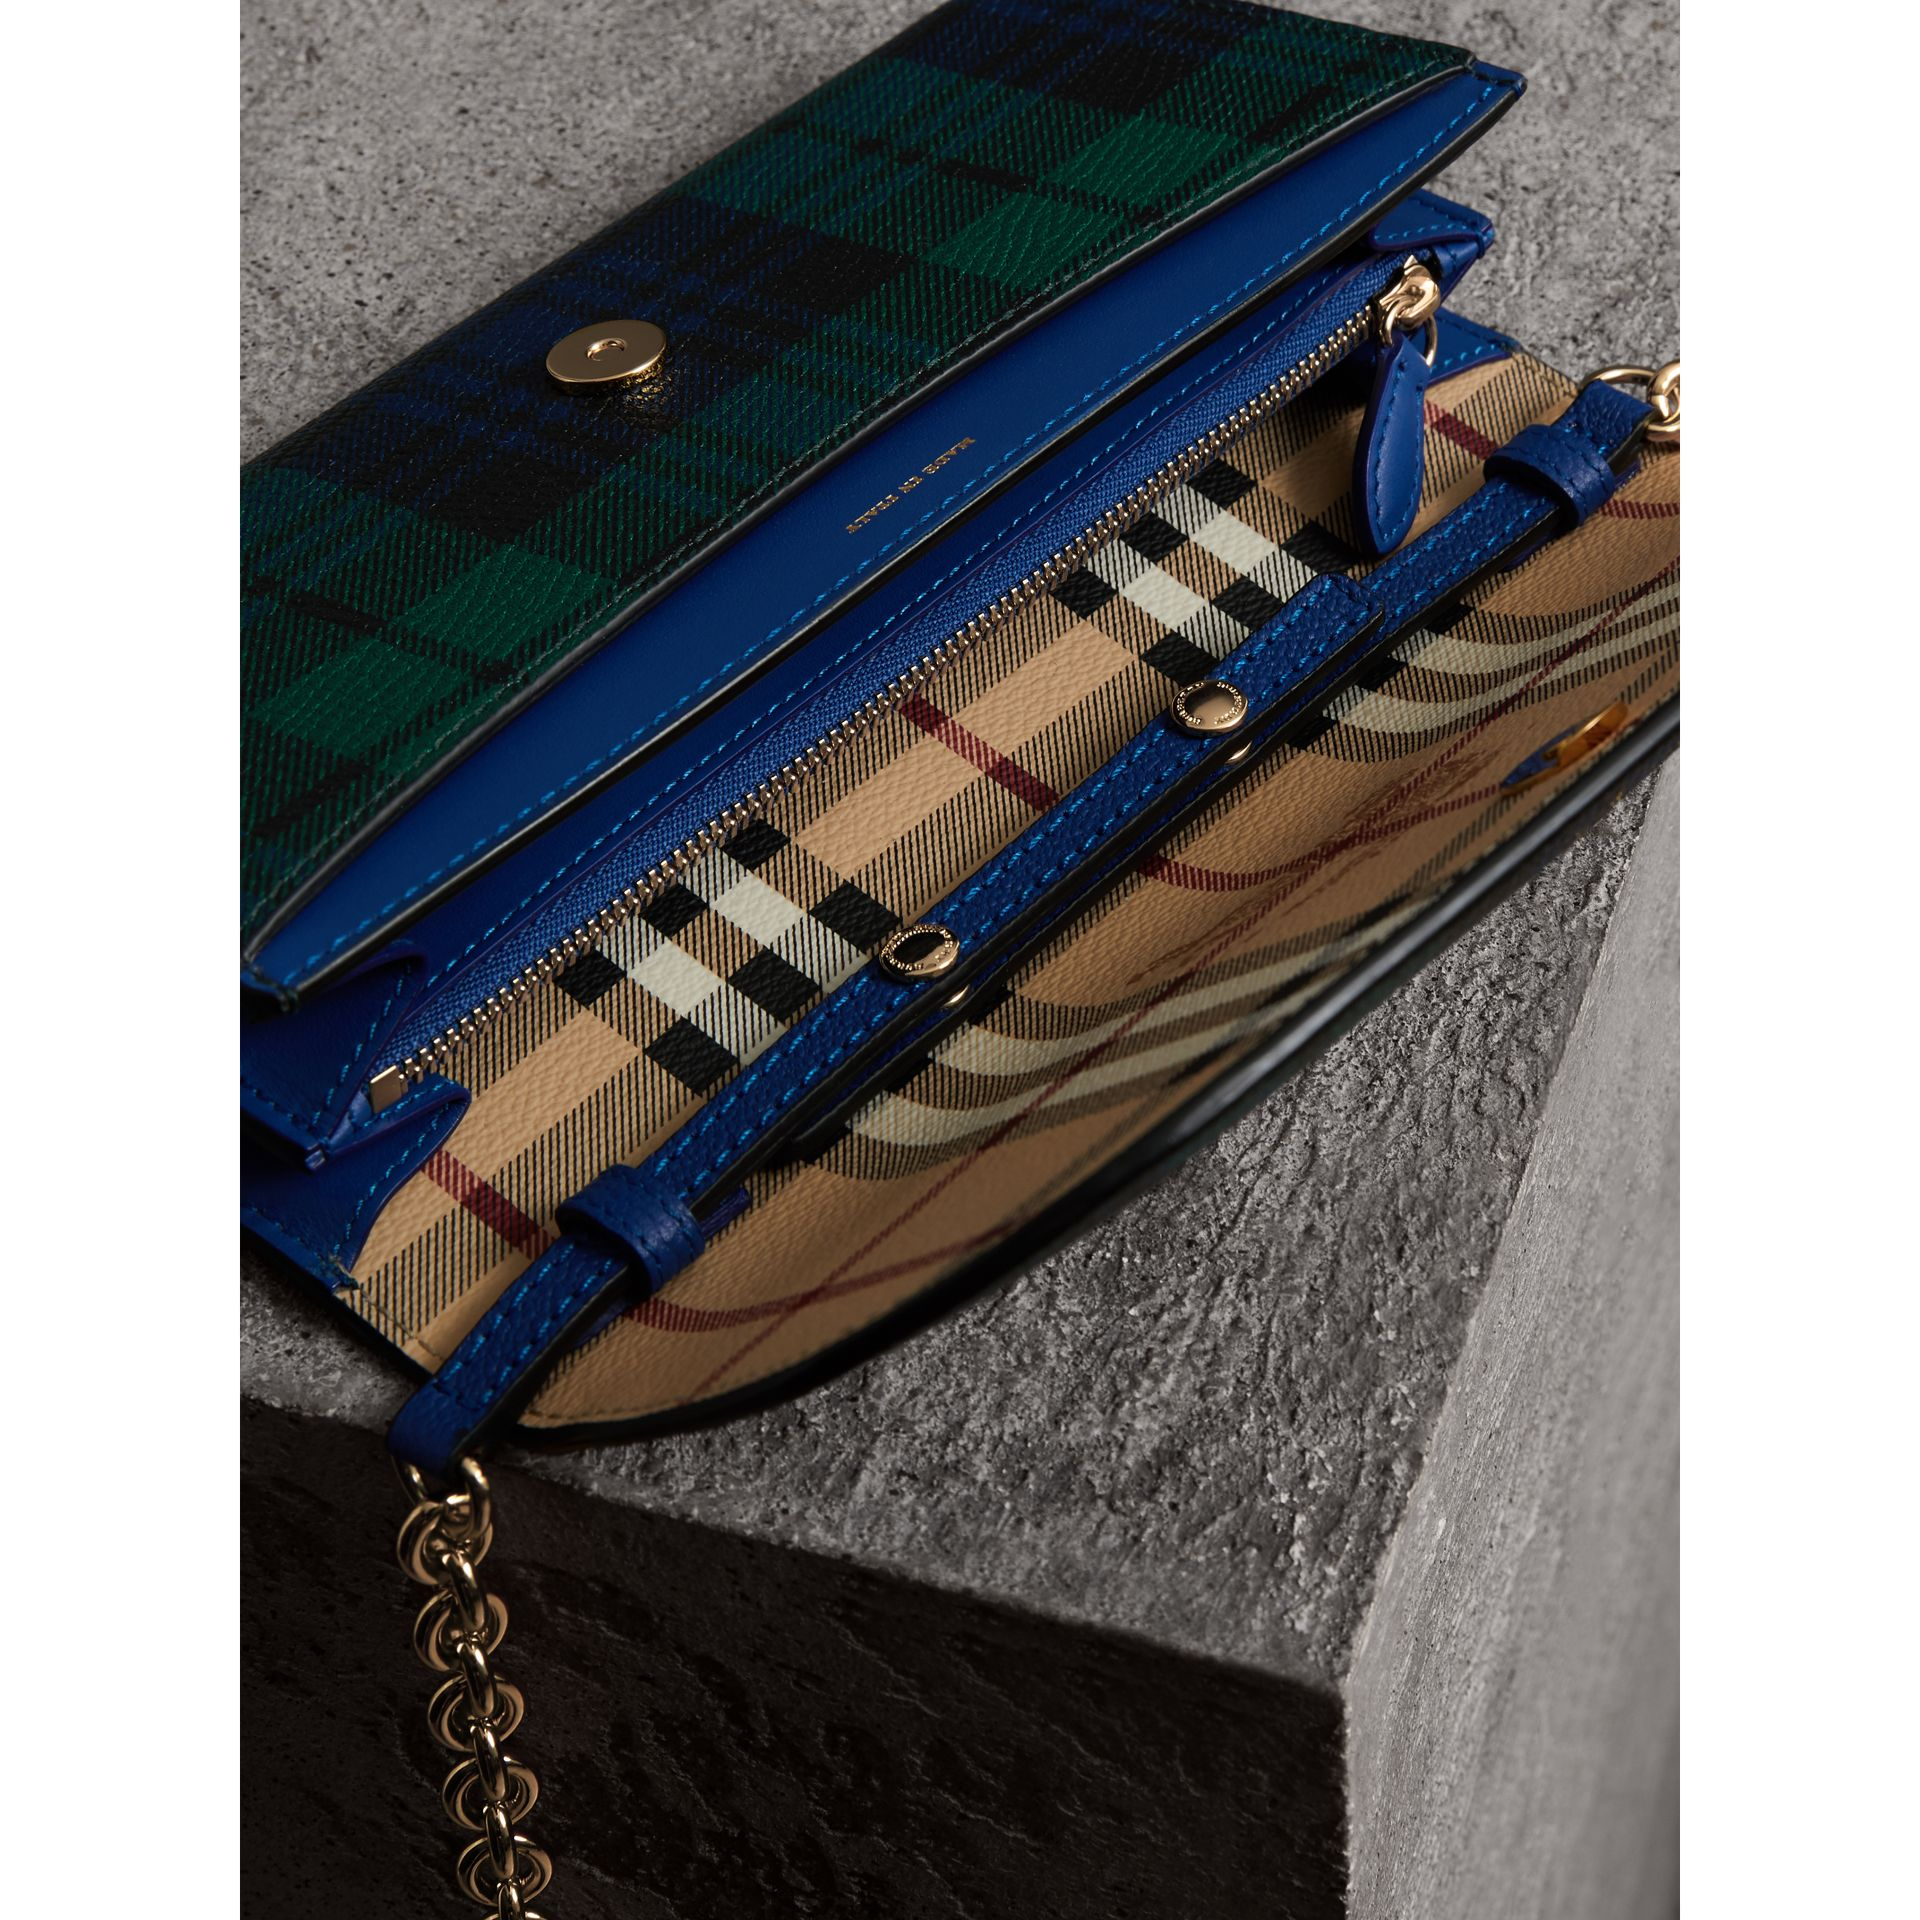 Creature Appliqué Tartan Leather Wallet with Chain in Bright Navy - Women | Burberry - gallery image 4